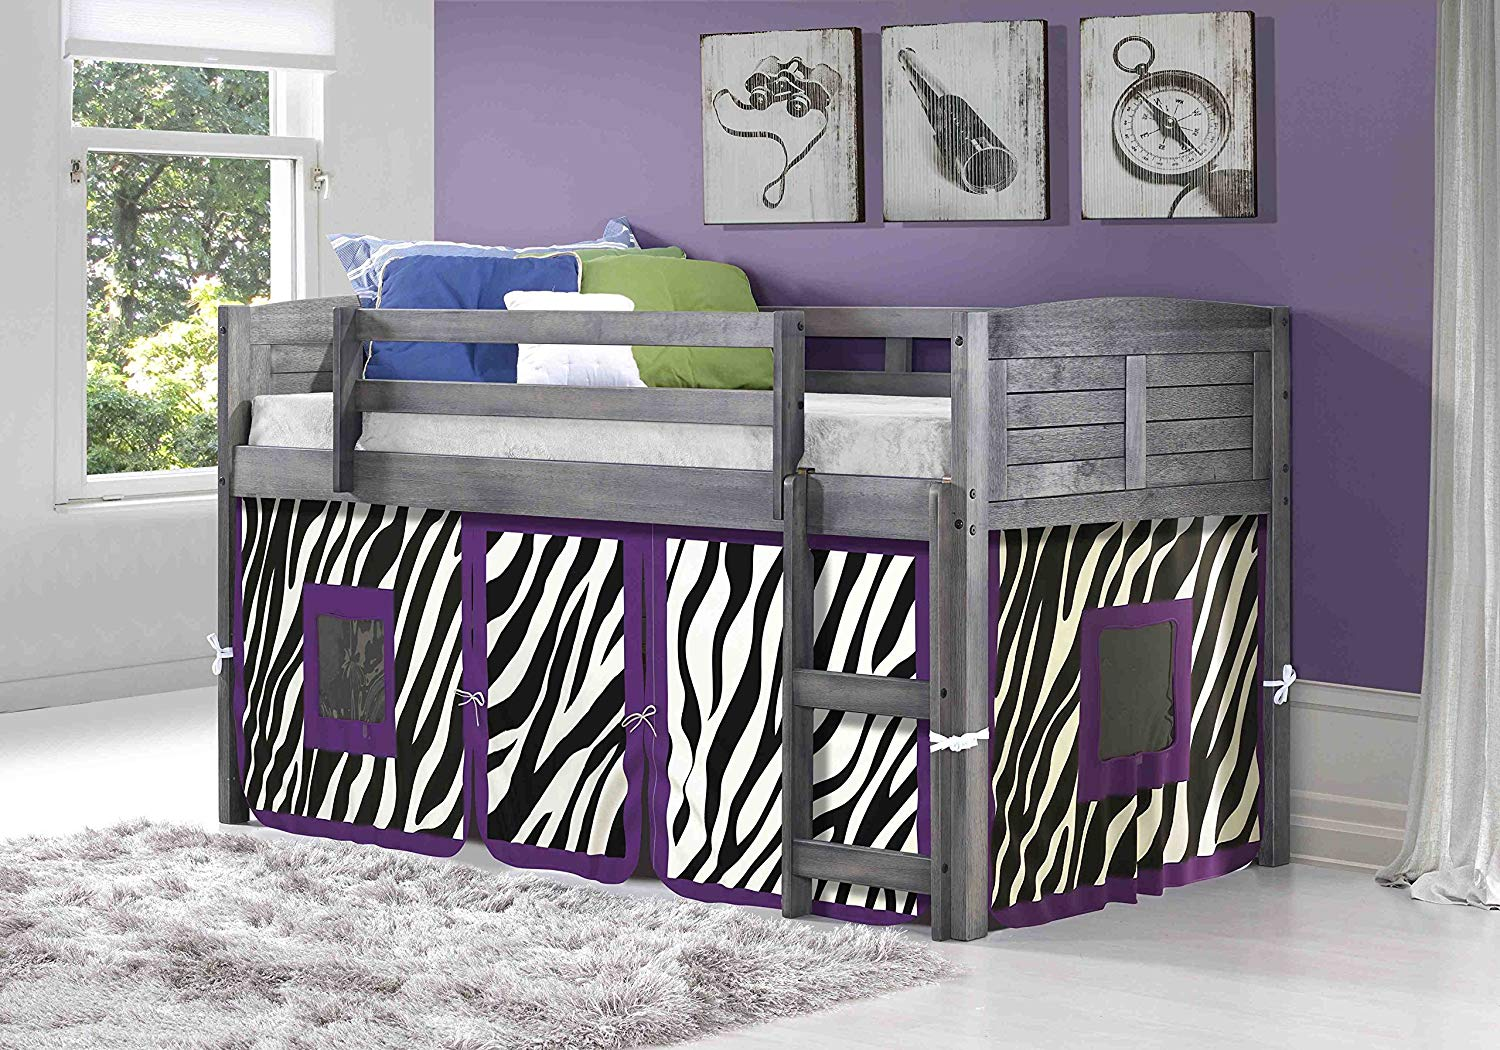 Twin loft bed with zebra tent fabric